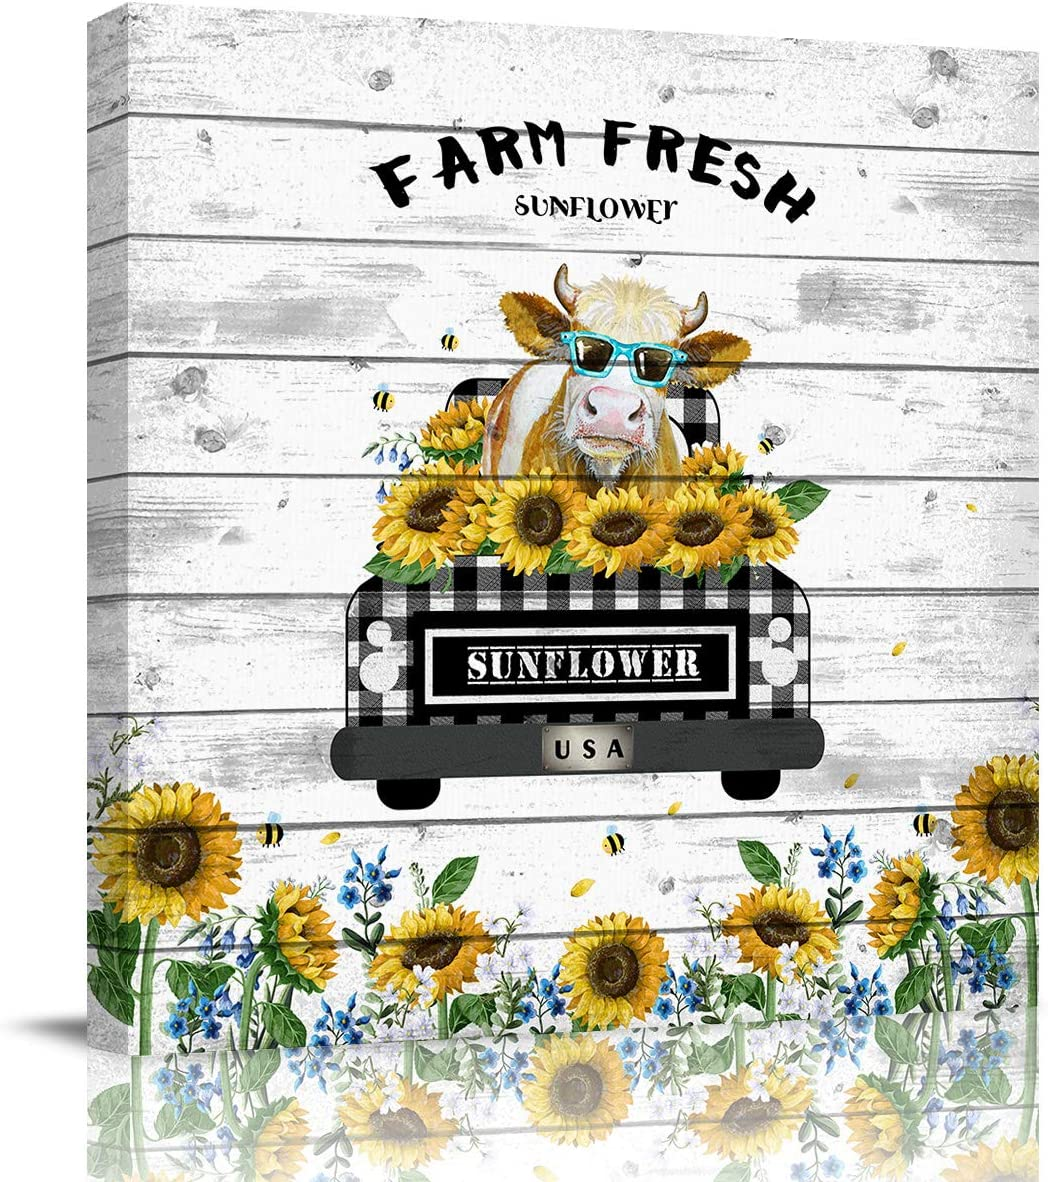 Canvas Prints Wall Art Paintings 12x12 inches Vintage Farm Buffalo Check Plaid Truck with Cow Sunflower Artworks for Living Room Bedroom Decoration Home Kitchen Bathroom Wall Decor Posters